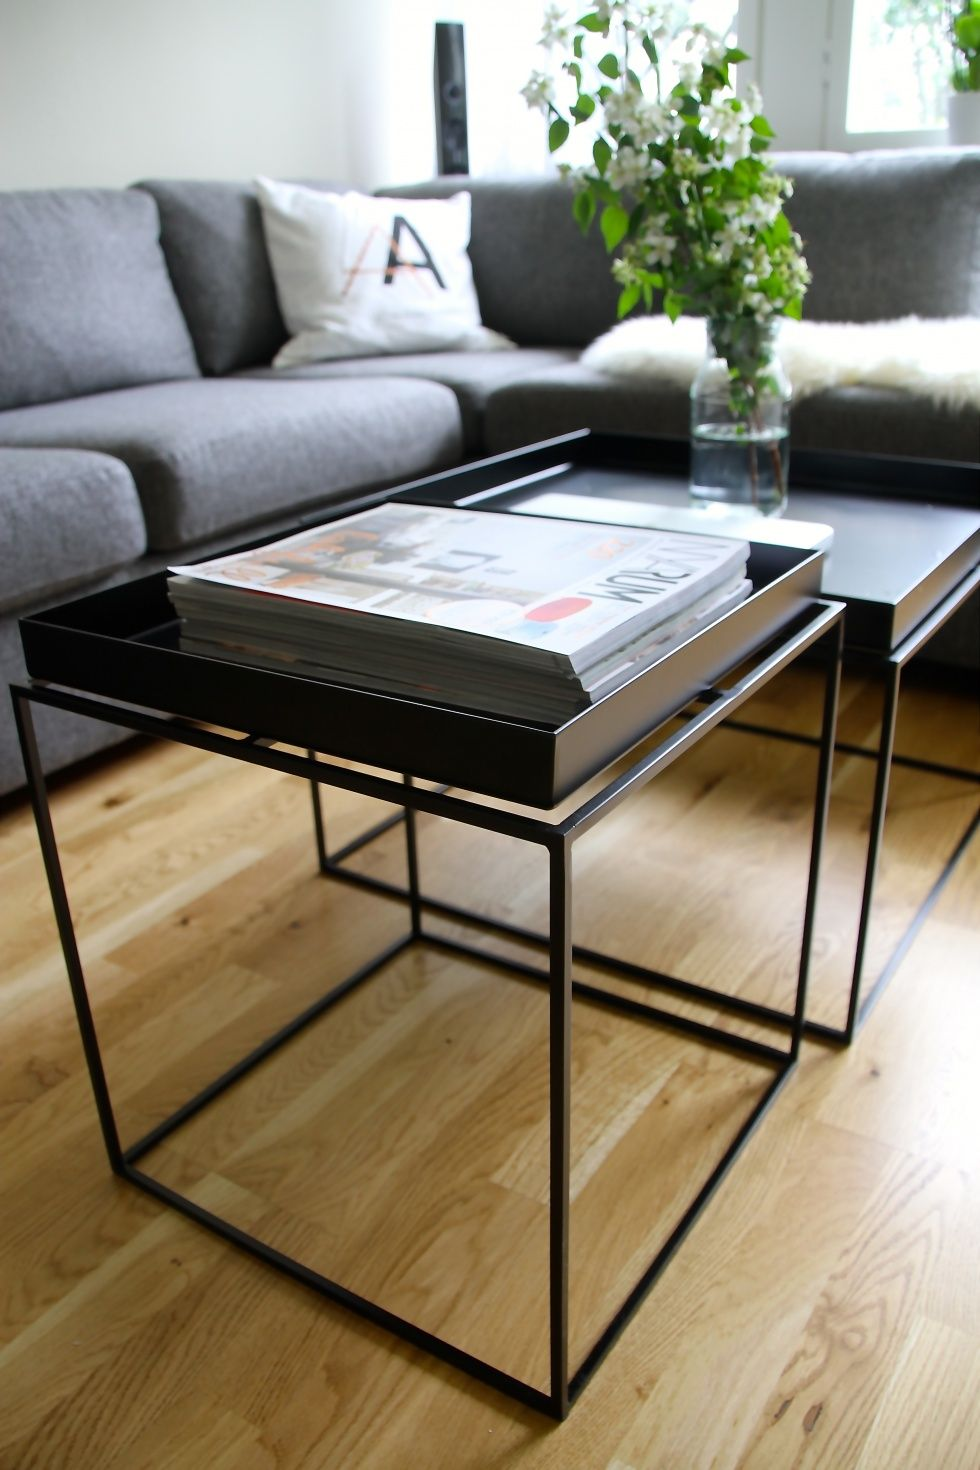 hay tray table zwart idee per la casa pinterest. Black Bedroom Furniture Sets. Home Design Ideas